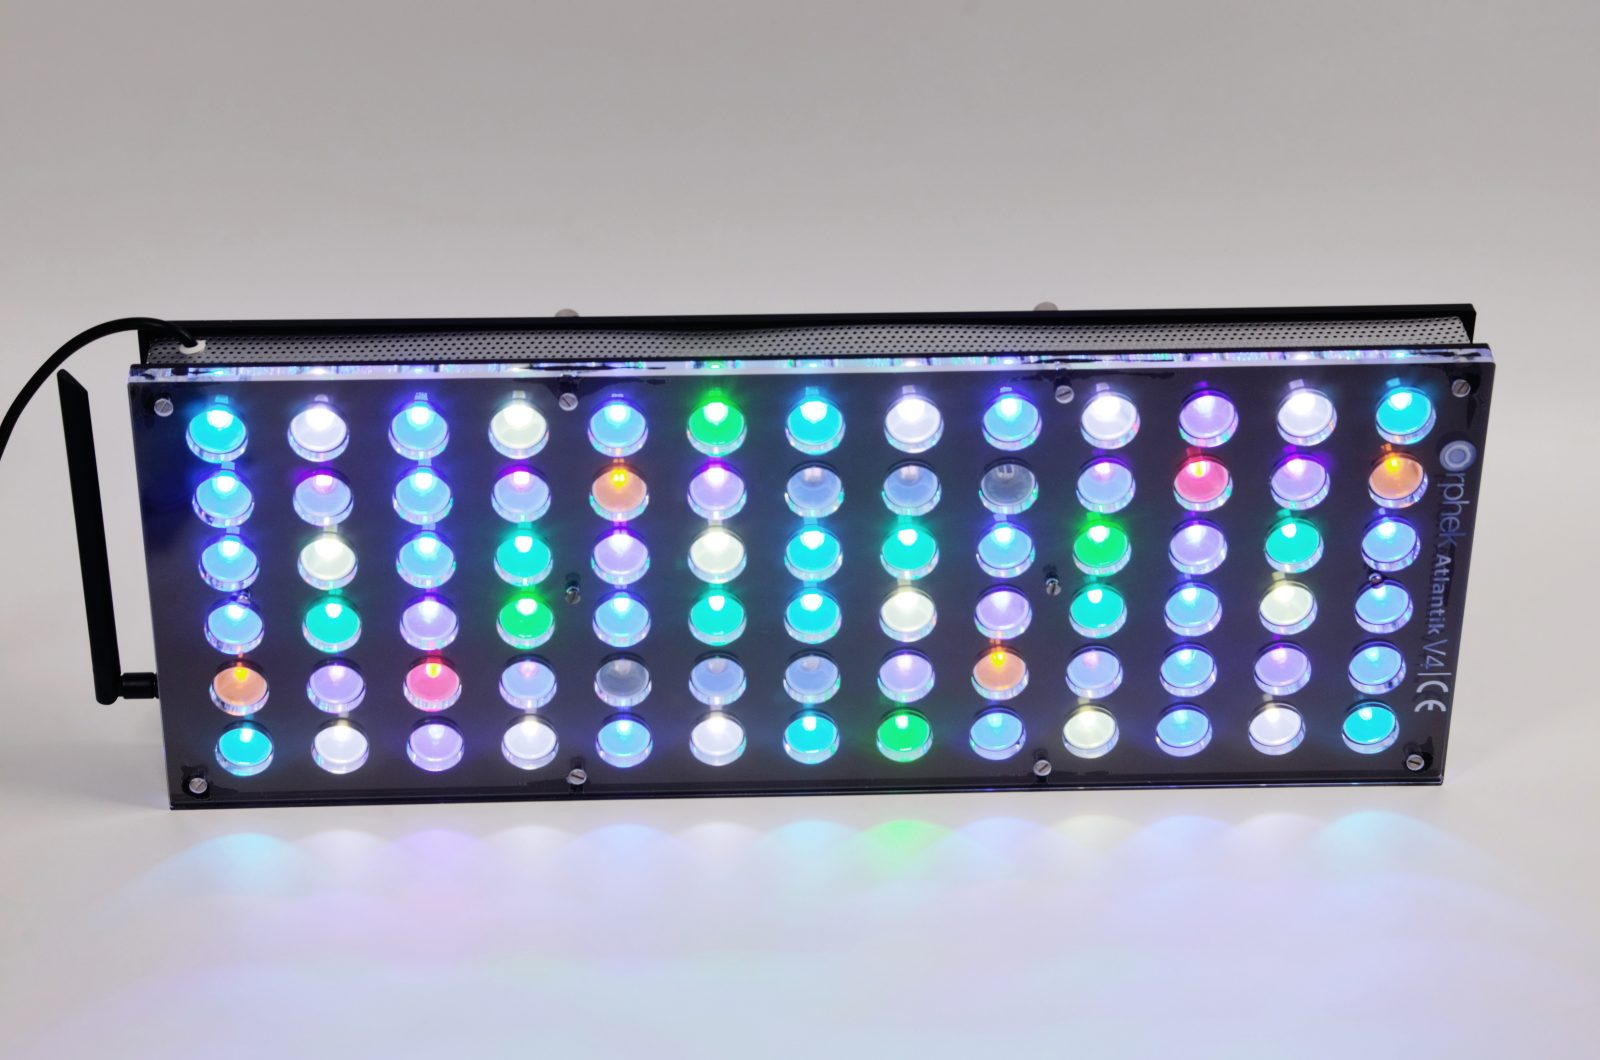 Atlantik V4 Reef Aquarium LED-belysning